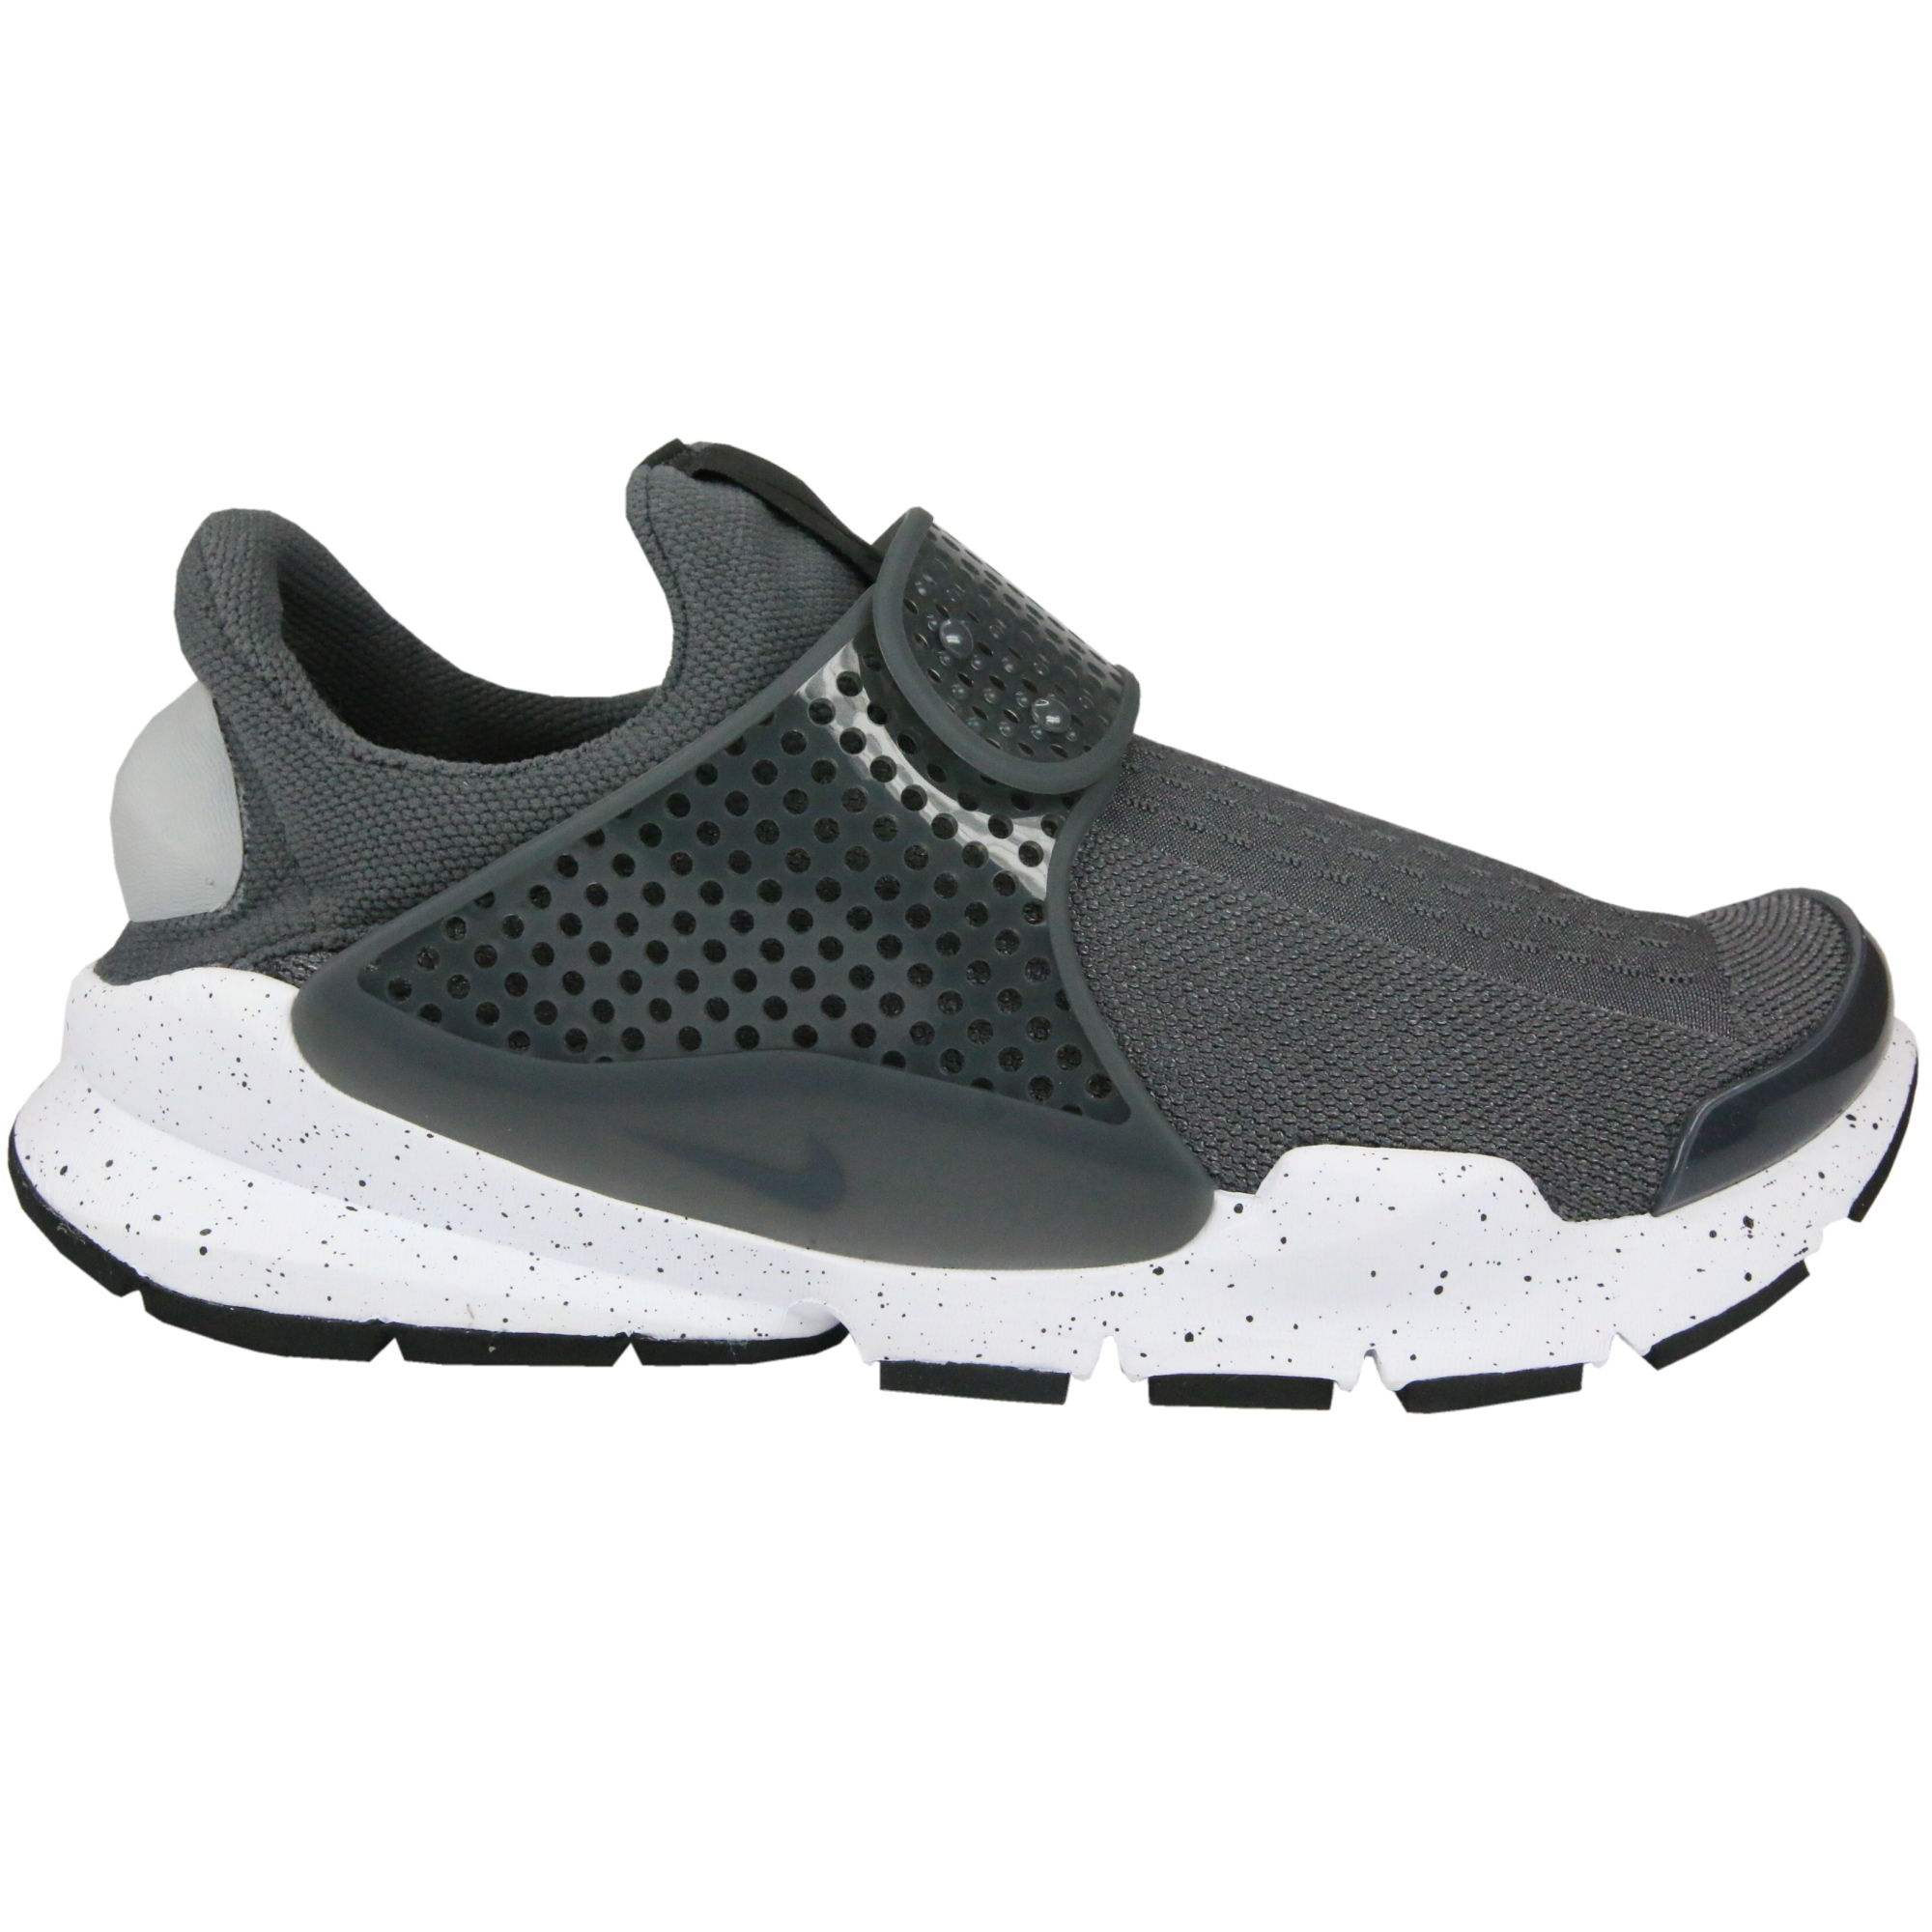 nike sock dart schuhe turnschuhe sneaker herren damen ebay. Black Bedroom Furniture Sets. Home Design Ideas